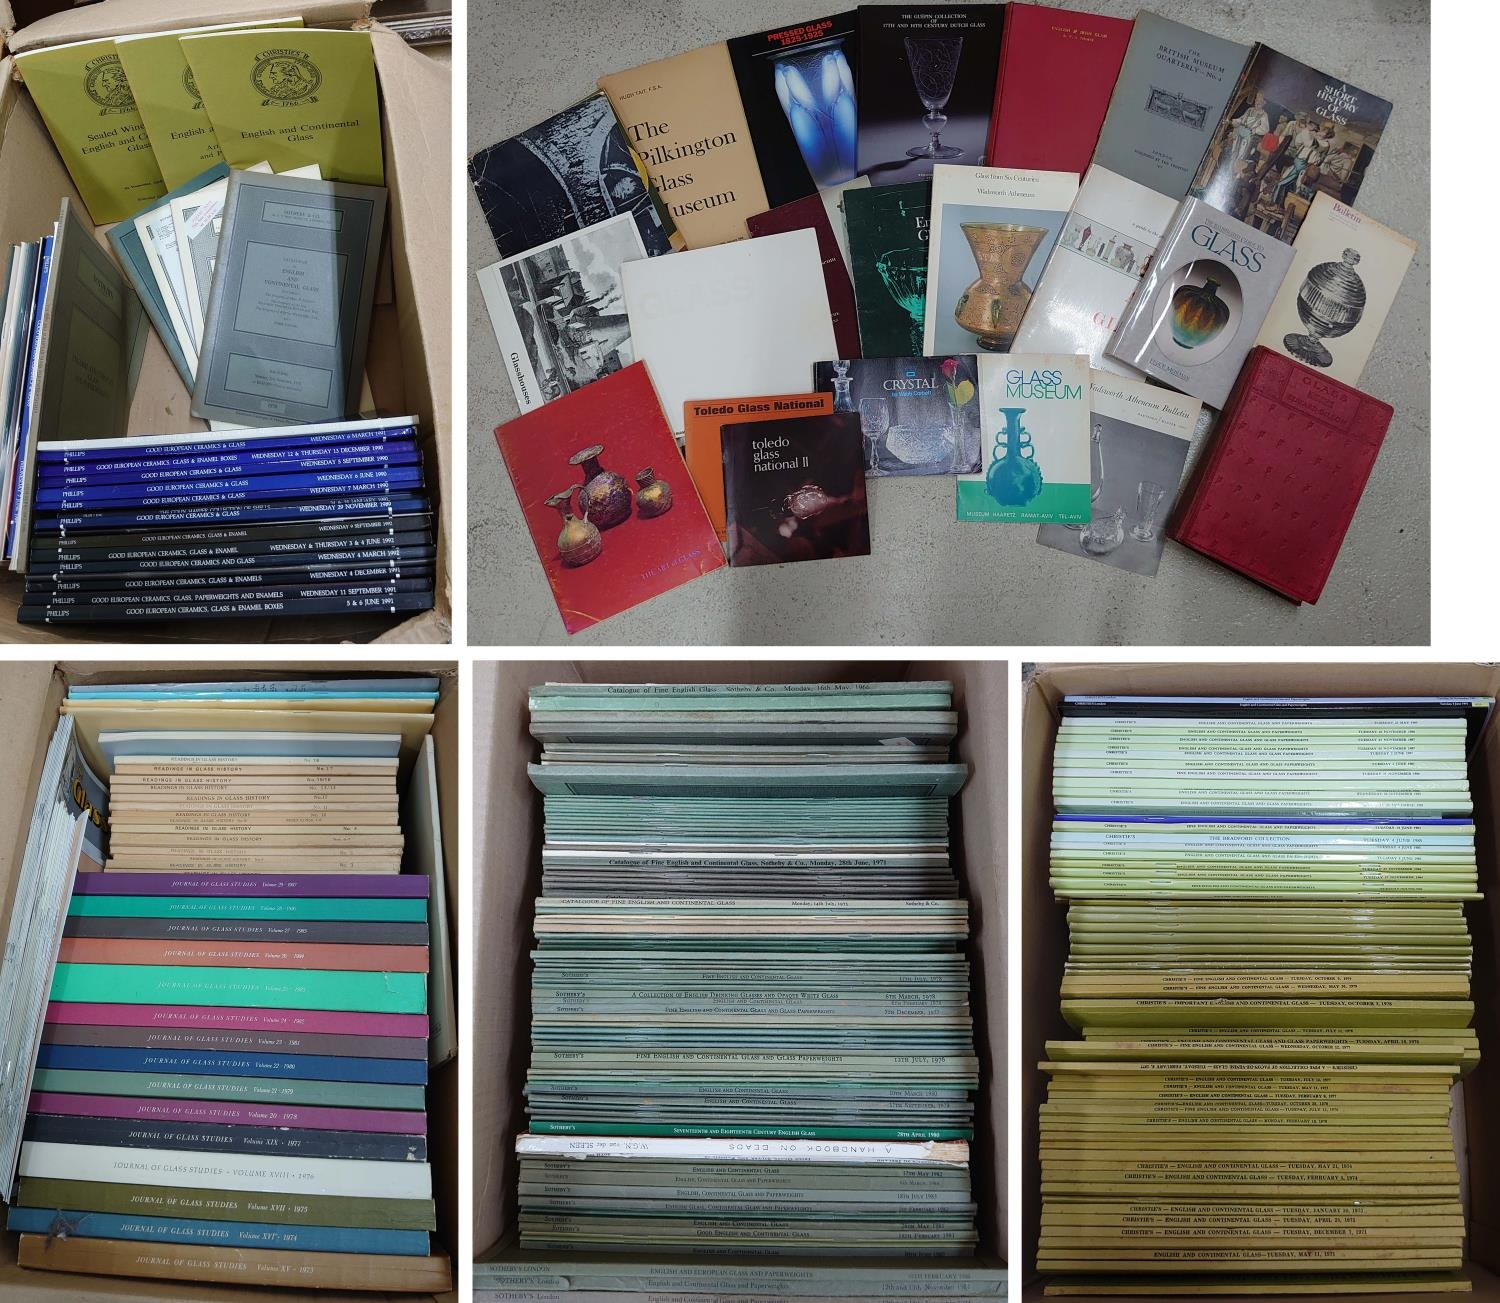 Large collection of auction saleroom catalogues including Sothebys, Christies and Phillips; together